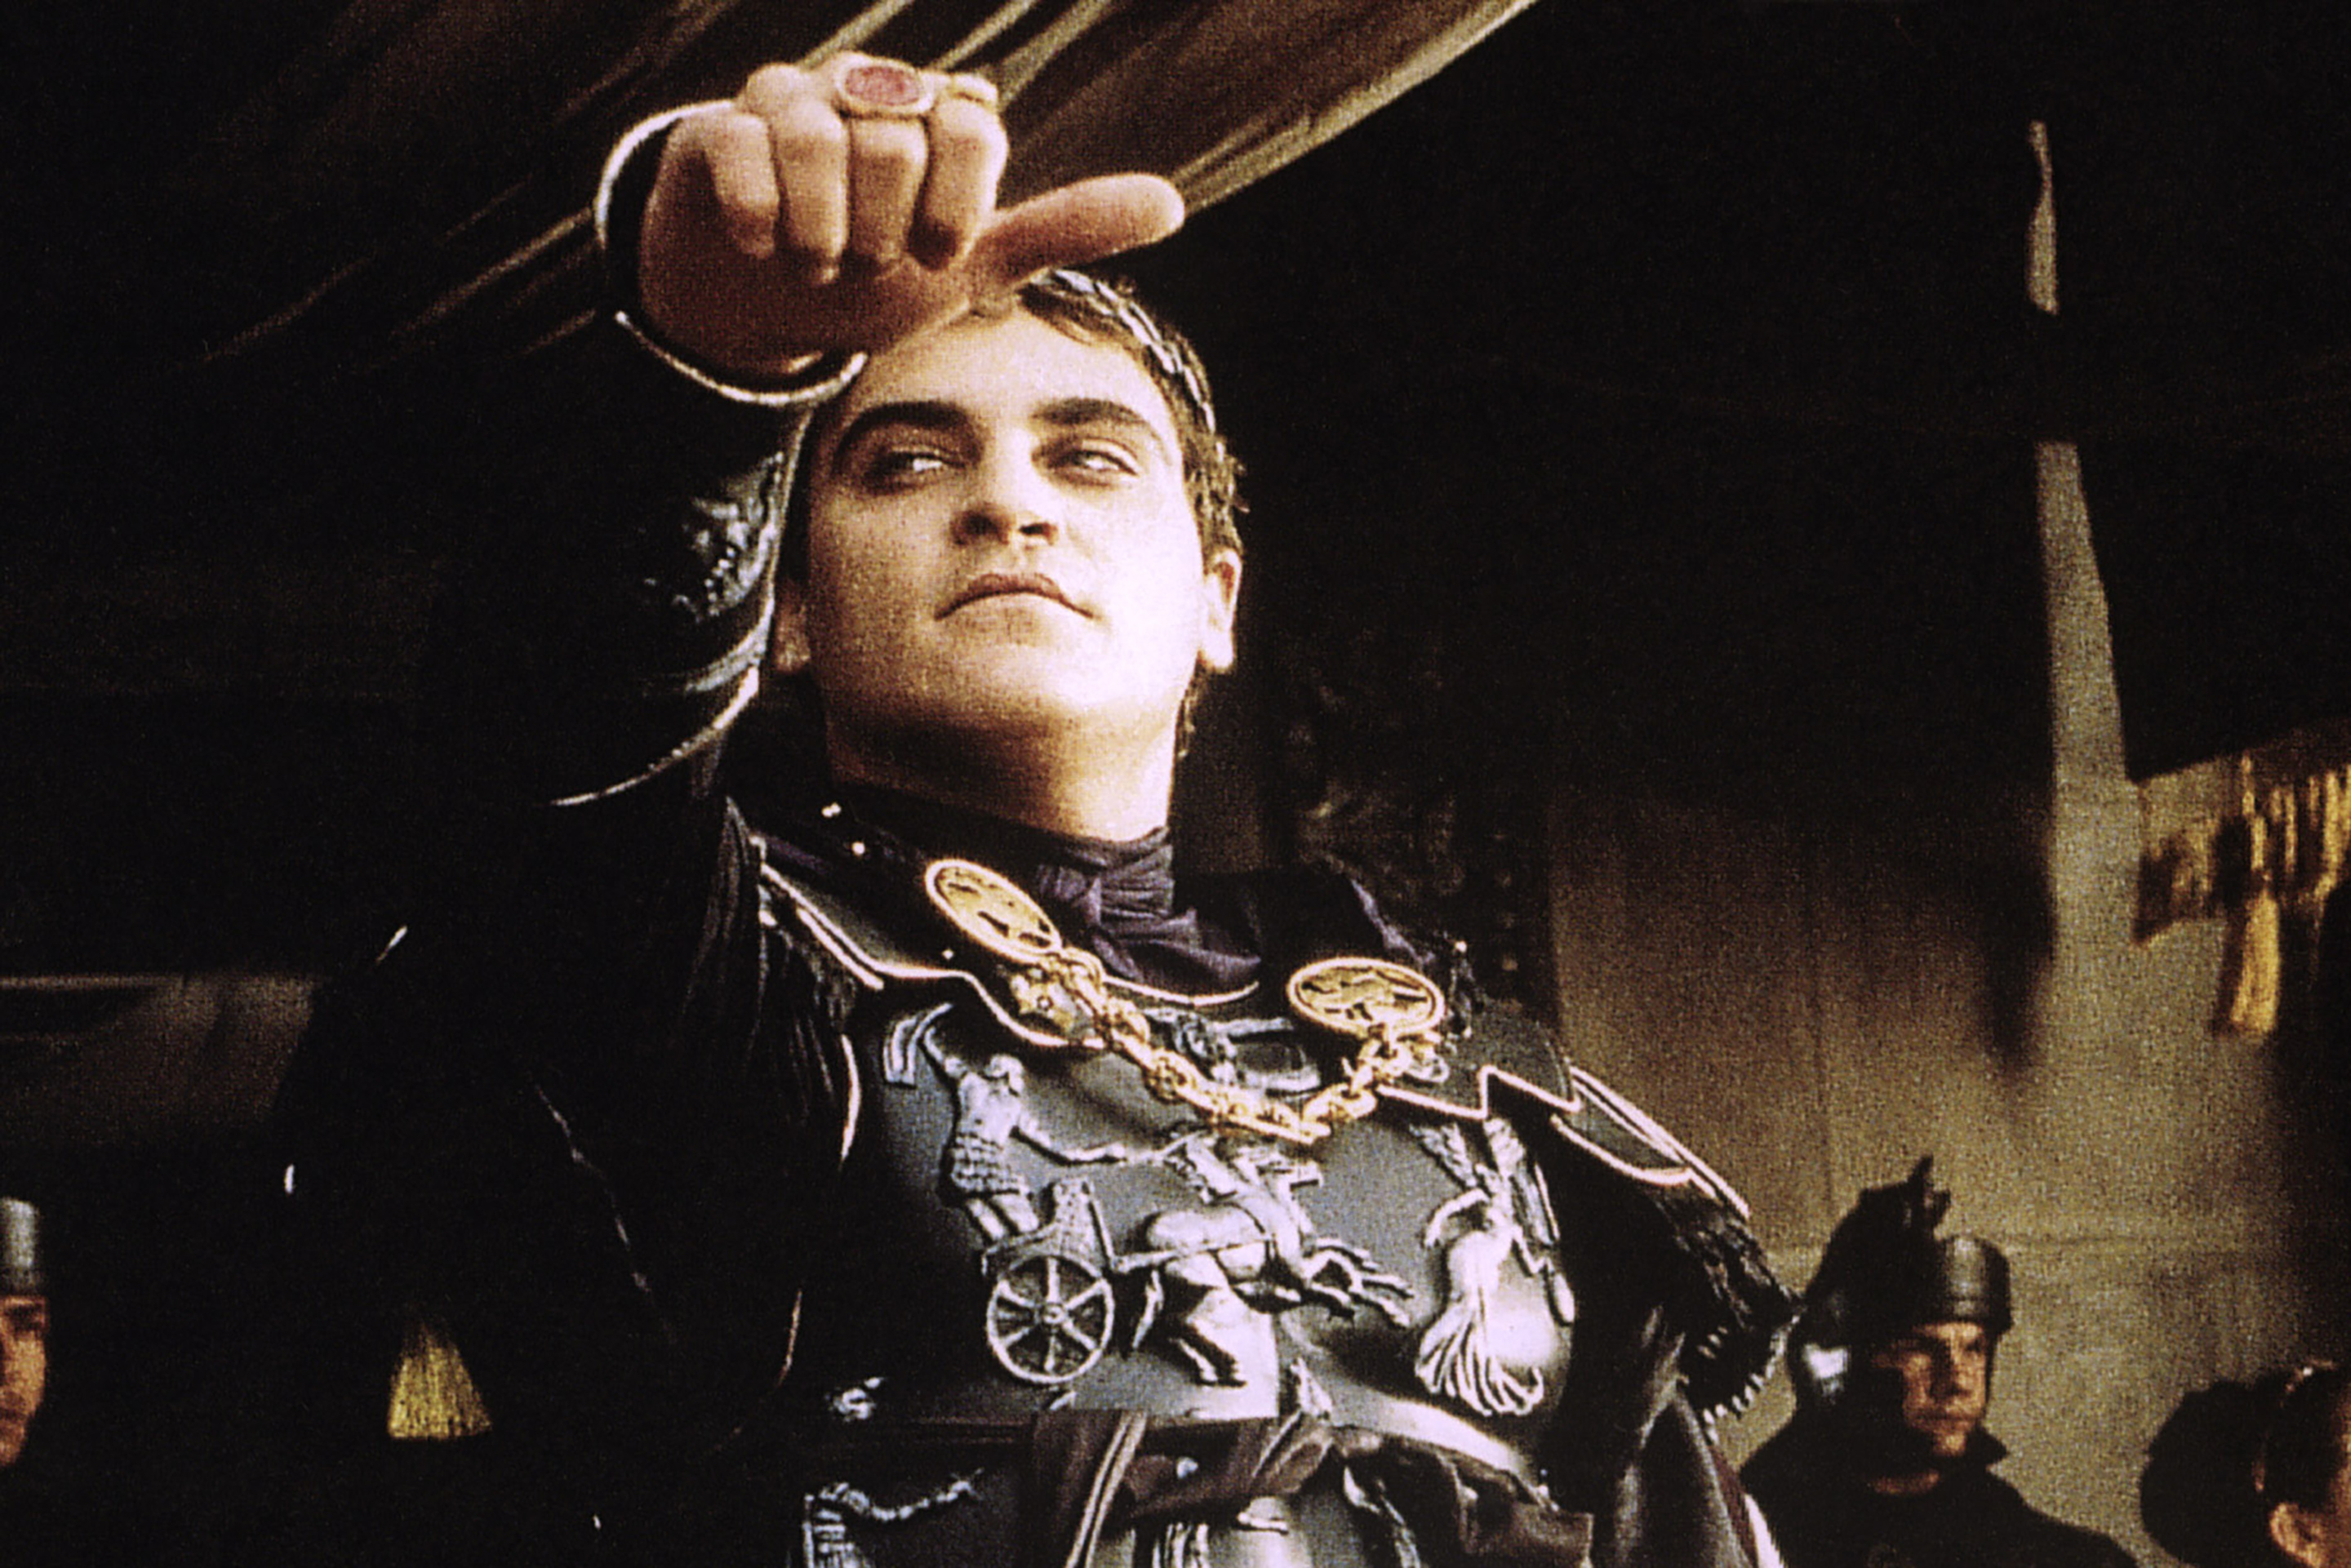 Emperor Commodus, as portrayed by Joaquin Phoenix in the film Gladiator.